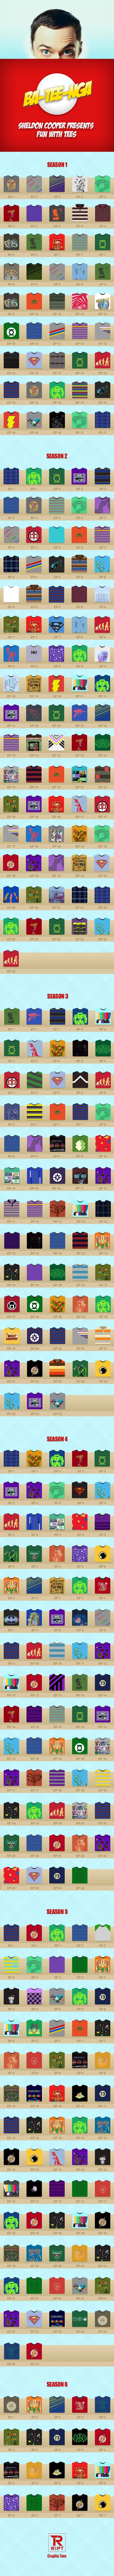 Every T-Shirt Sheldon Cooper Has Ever Worn In The #BigBangTheory